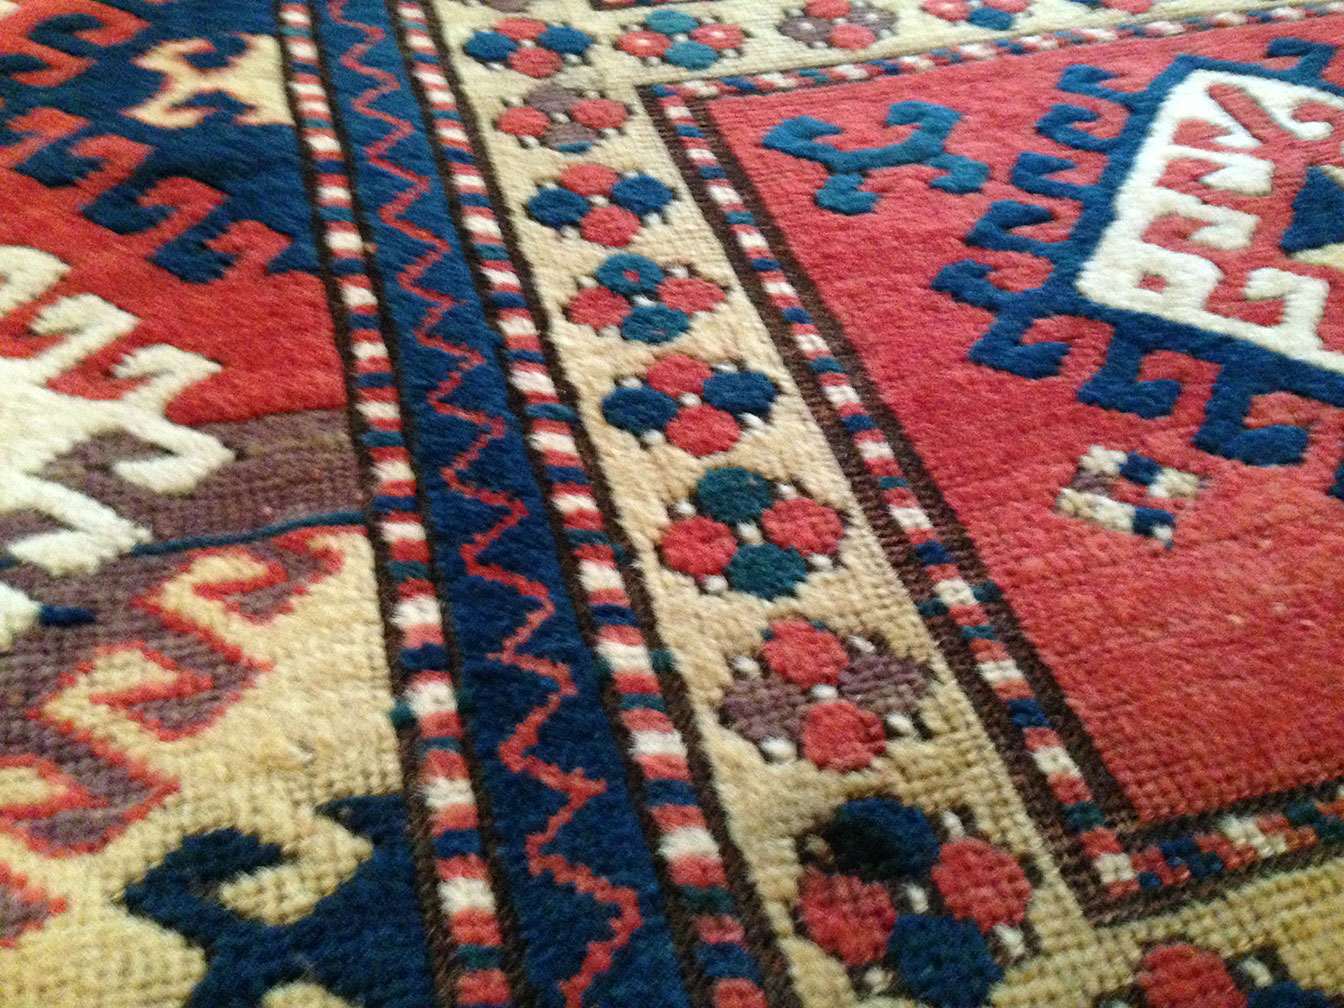 Antique kazak, bordjaloo Rug - # 9646